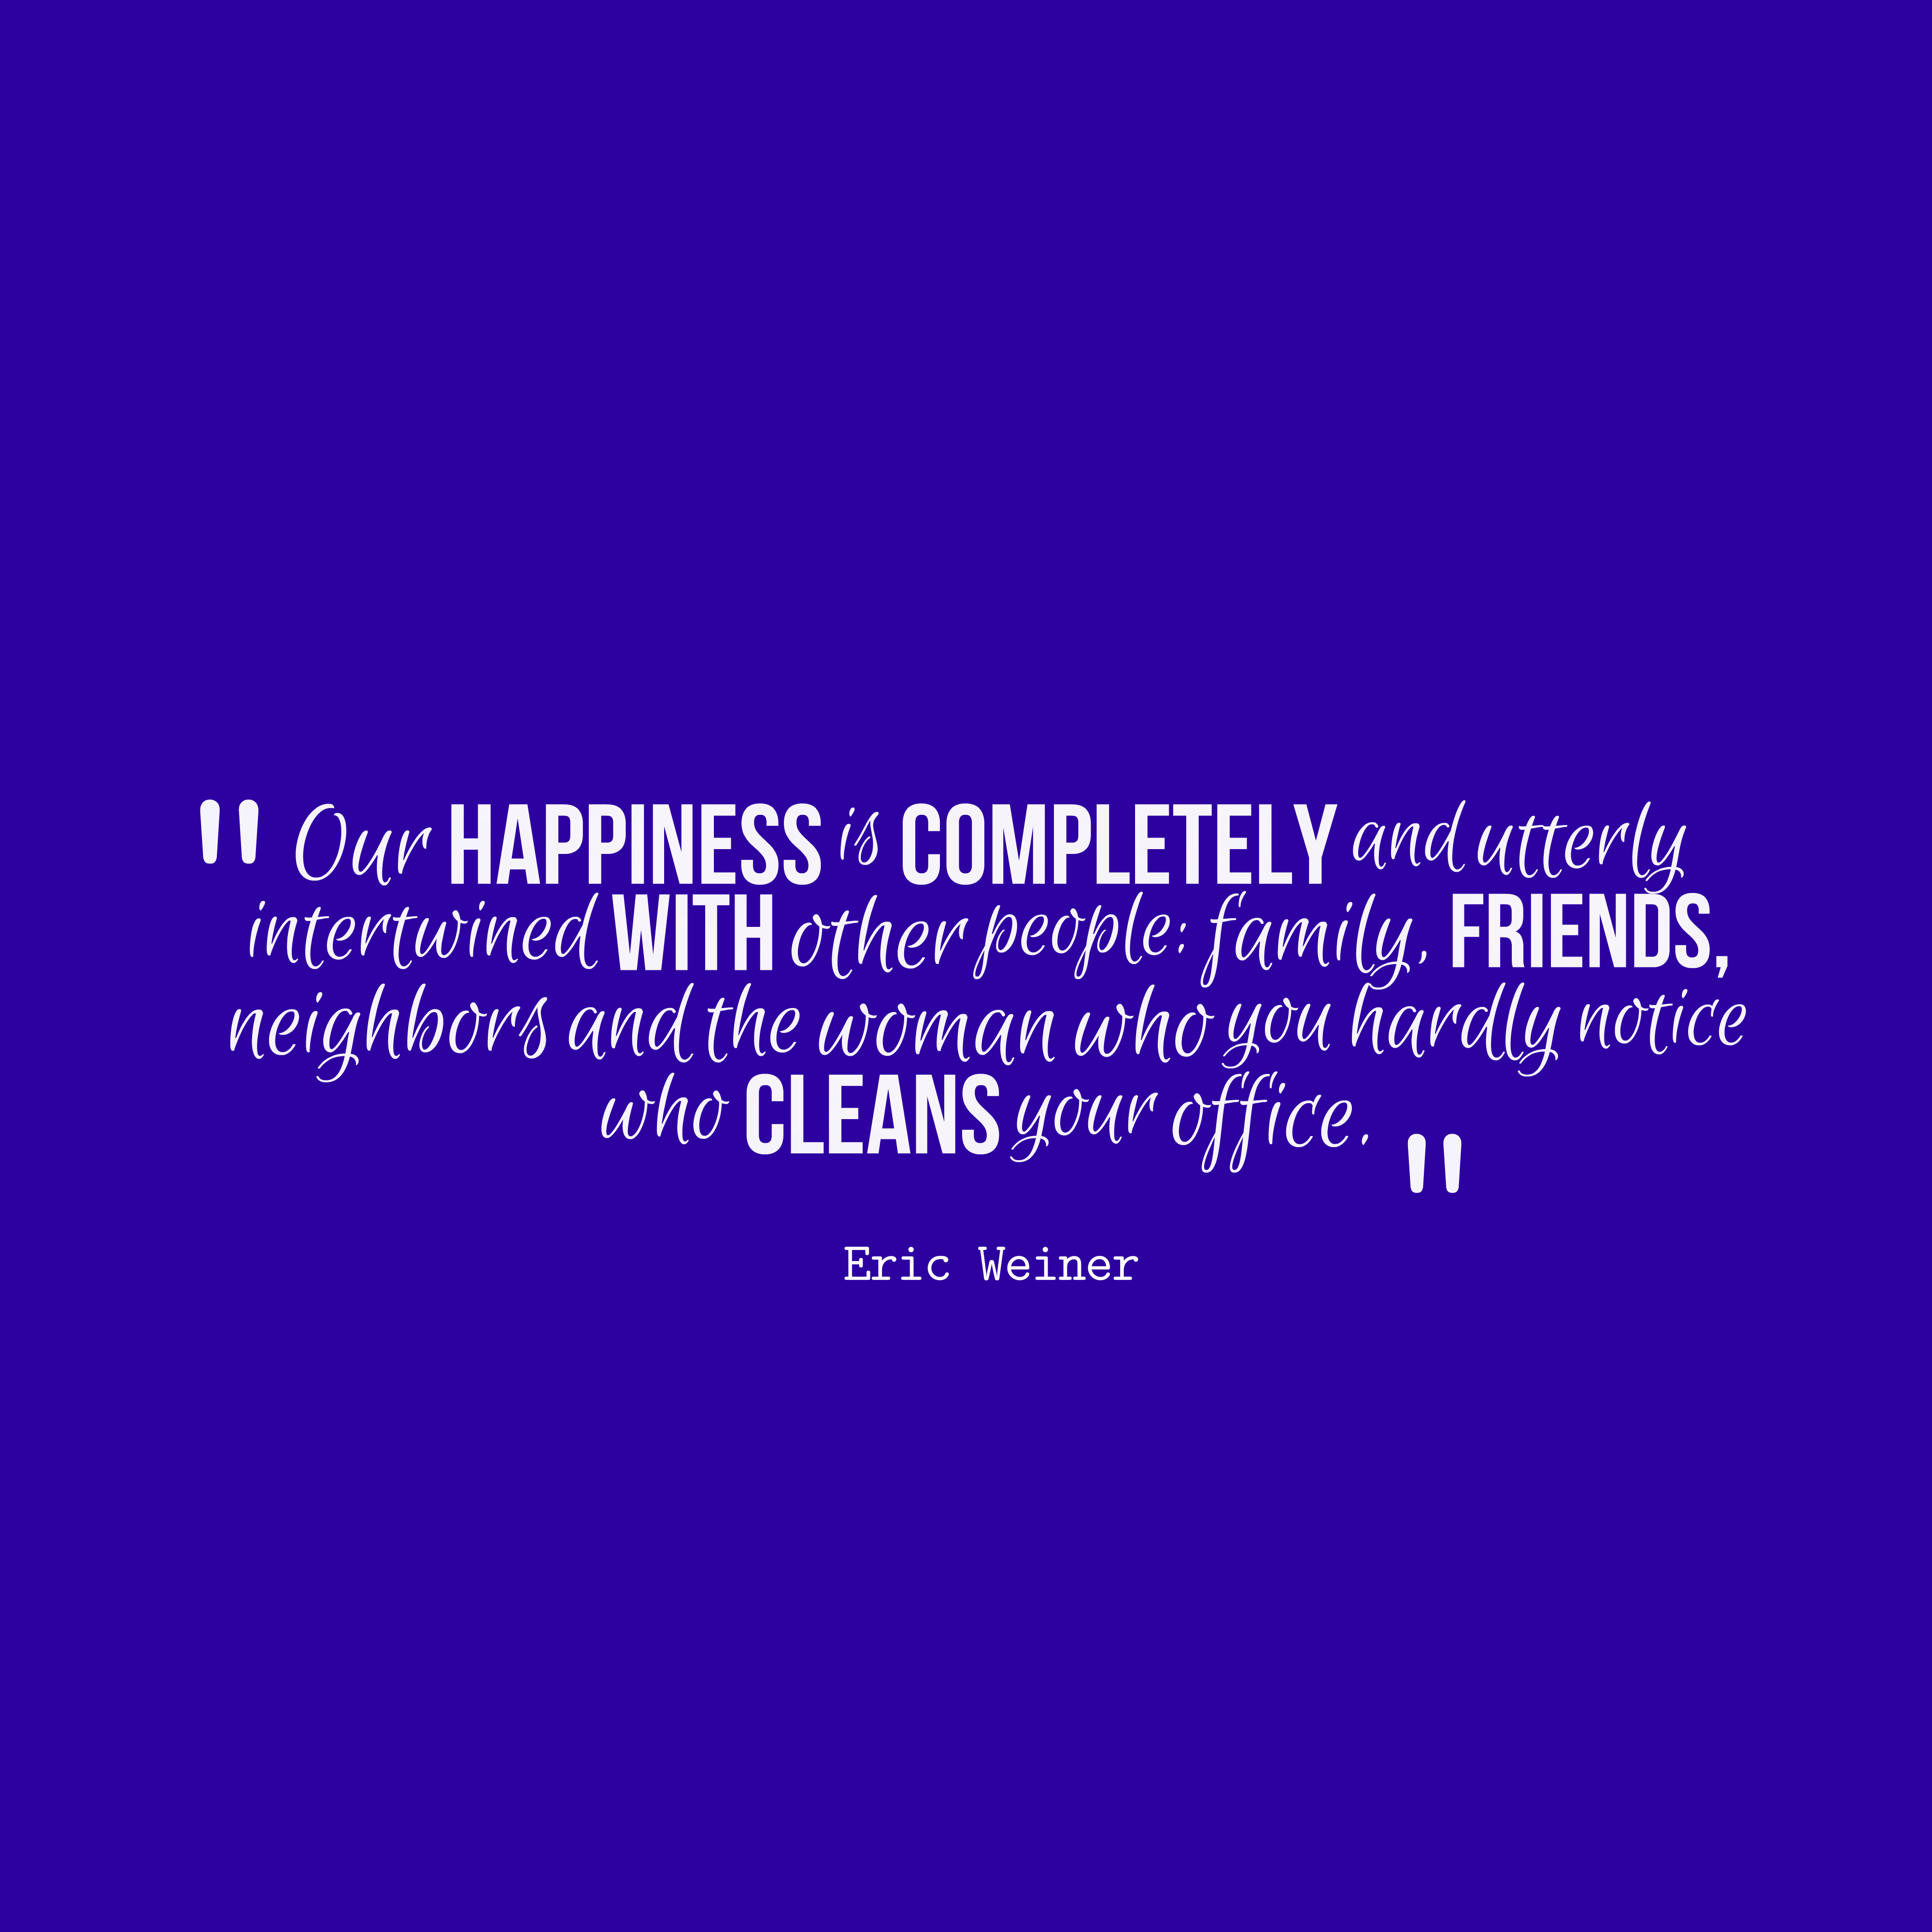 Quotes image of Our happiness is completely and utterly intertwined with other people: family, friends, neighbors and the woman who you hardly notice who cleans your office.